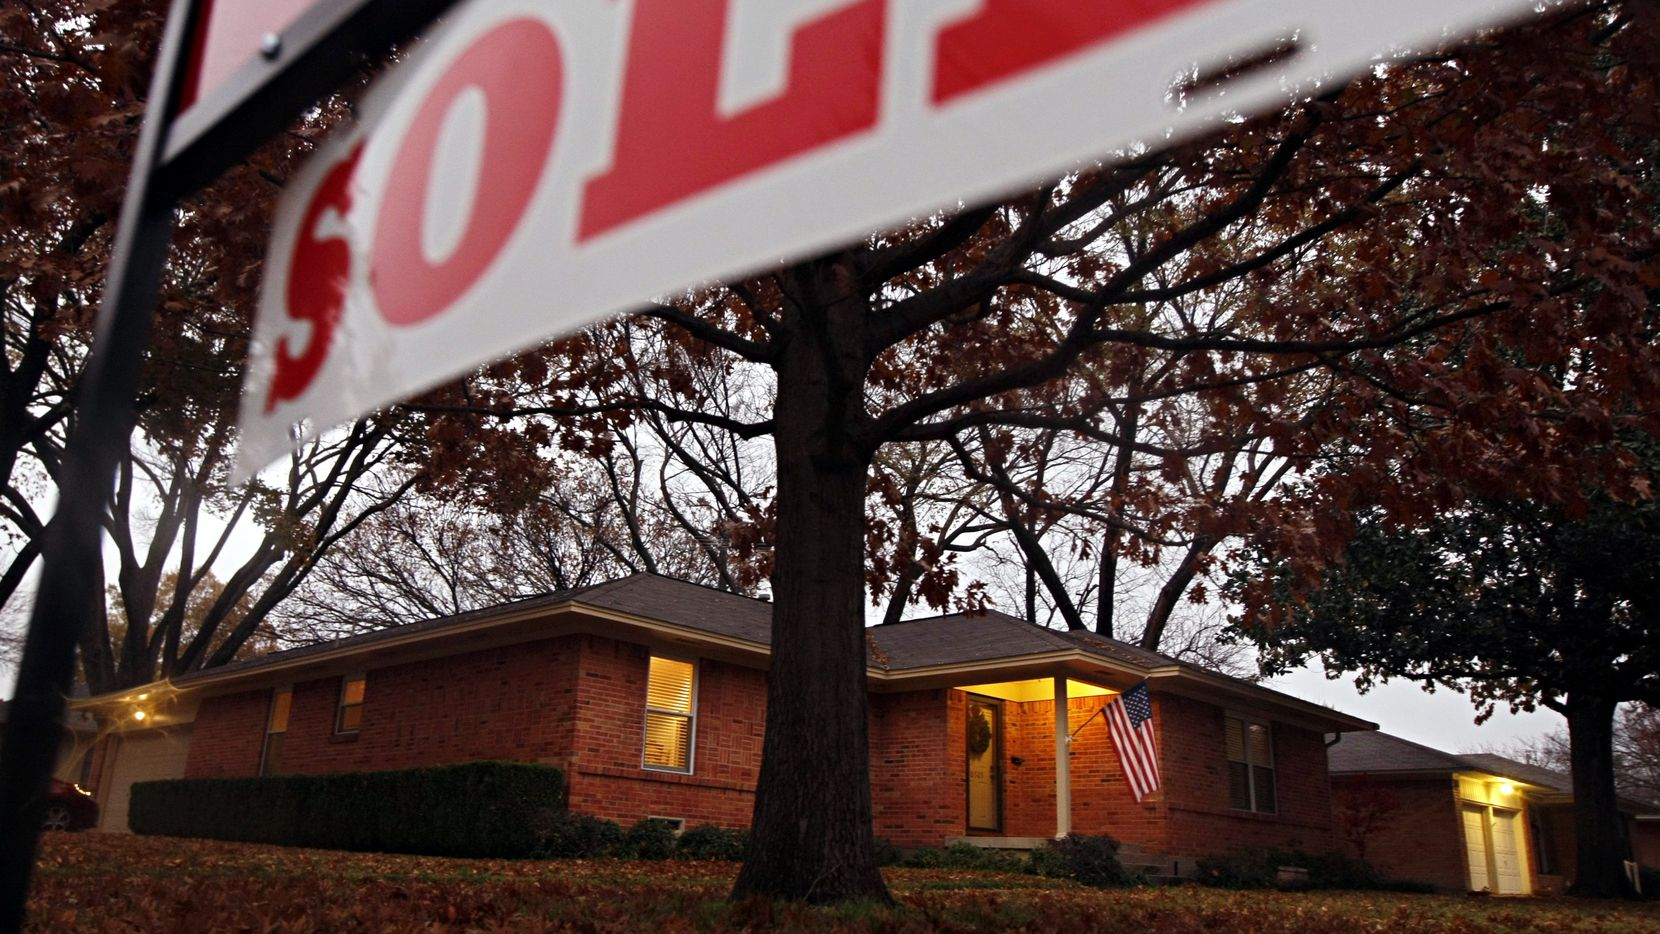 In Southern states, including Texas, only 30 percent of home sales go to first-time buyers.